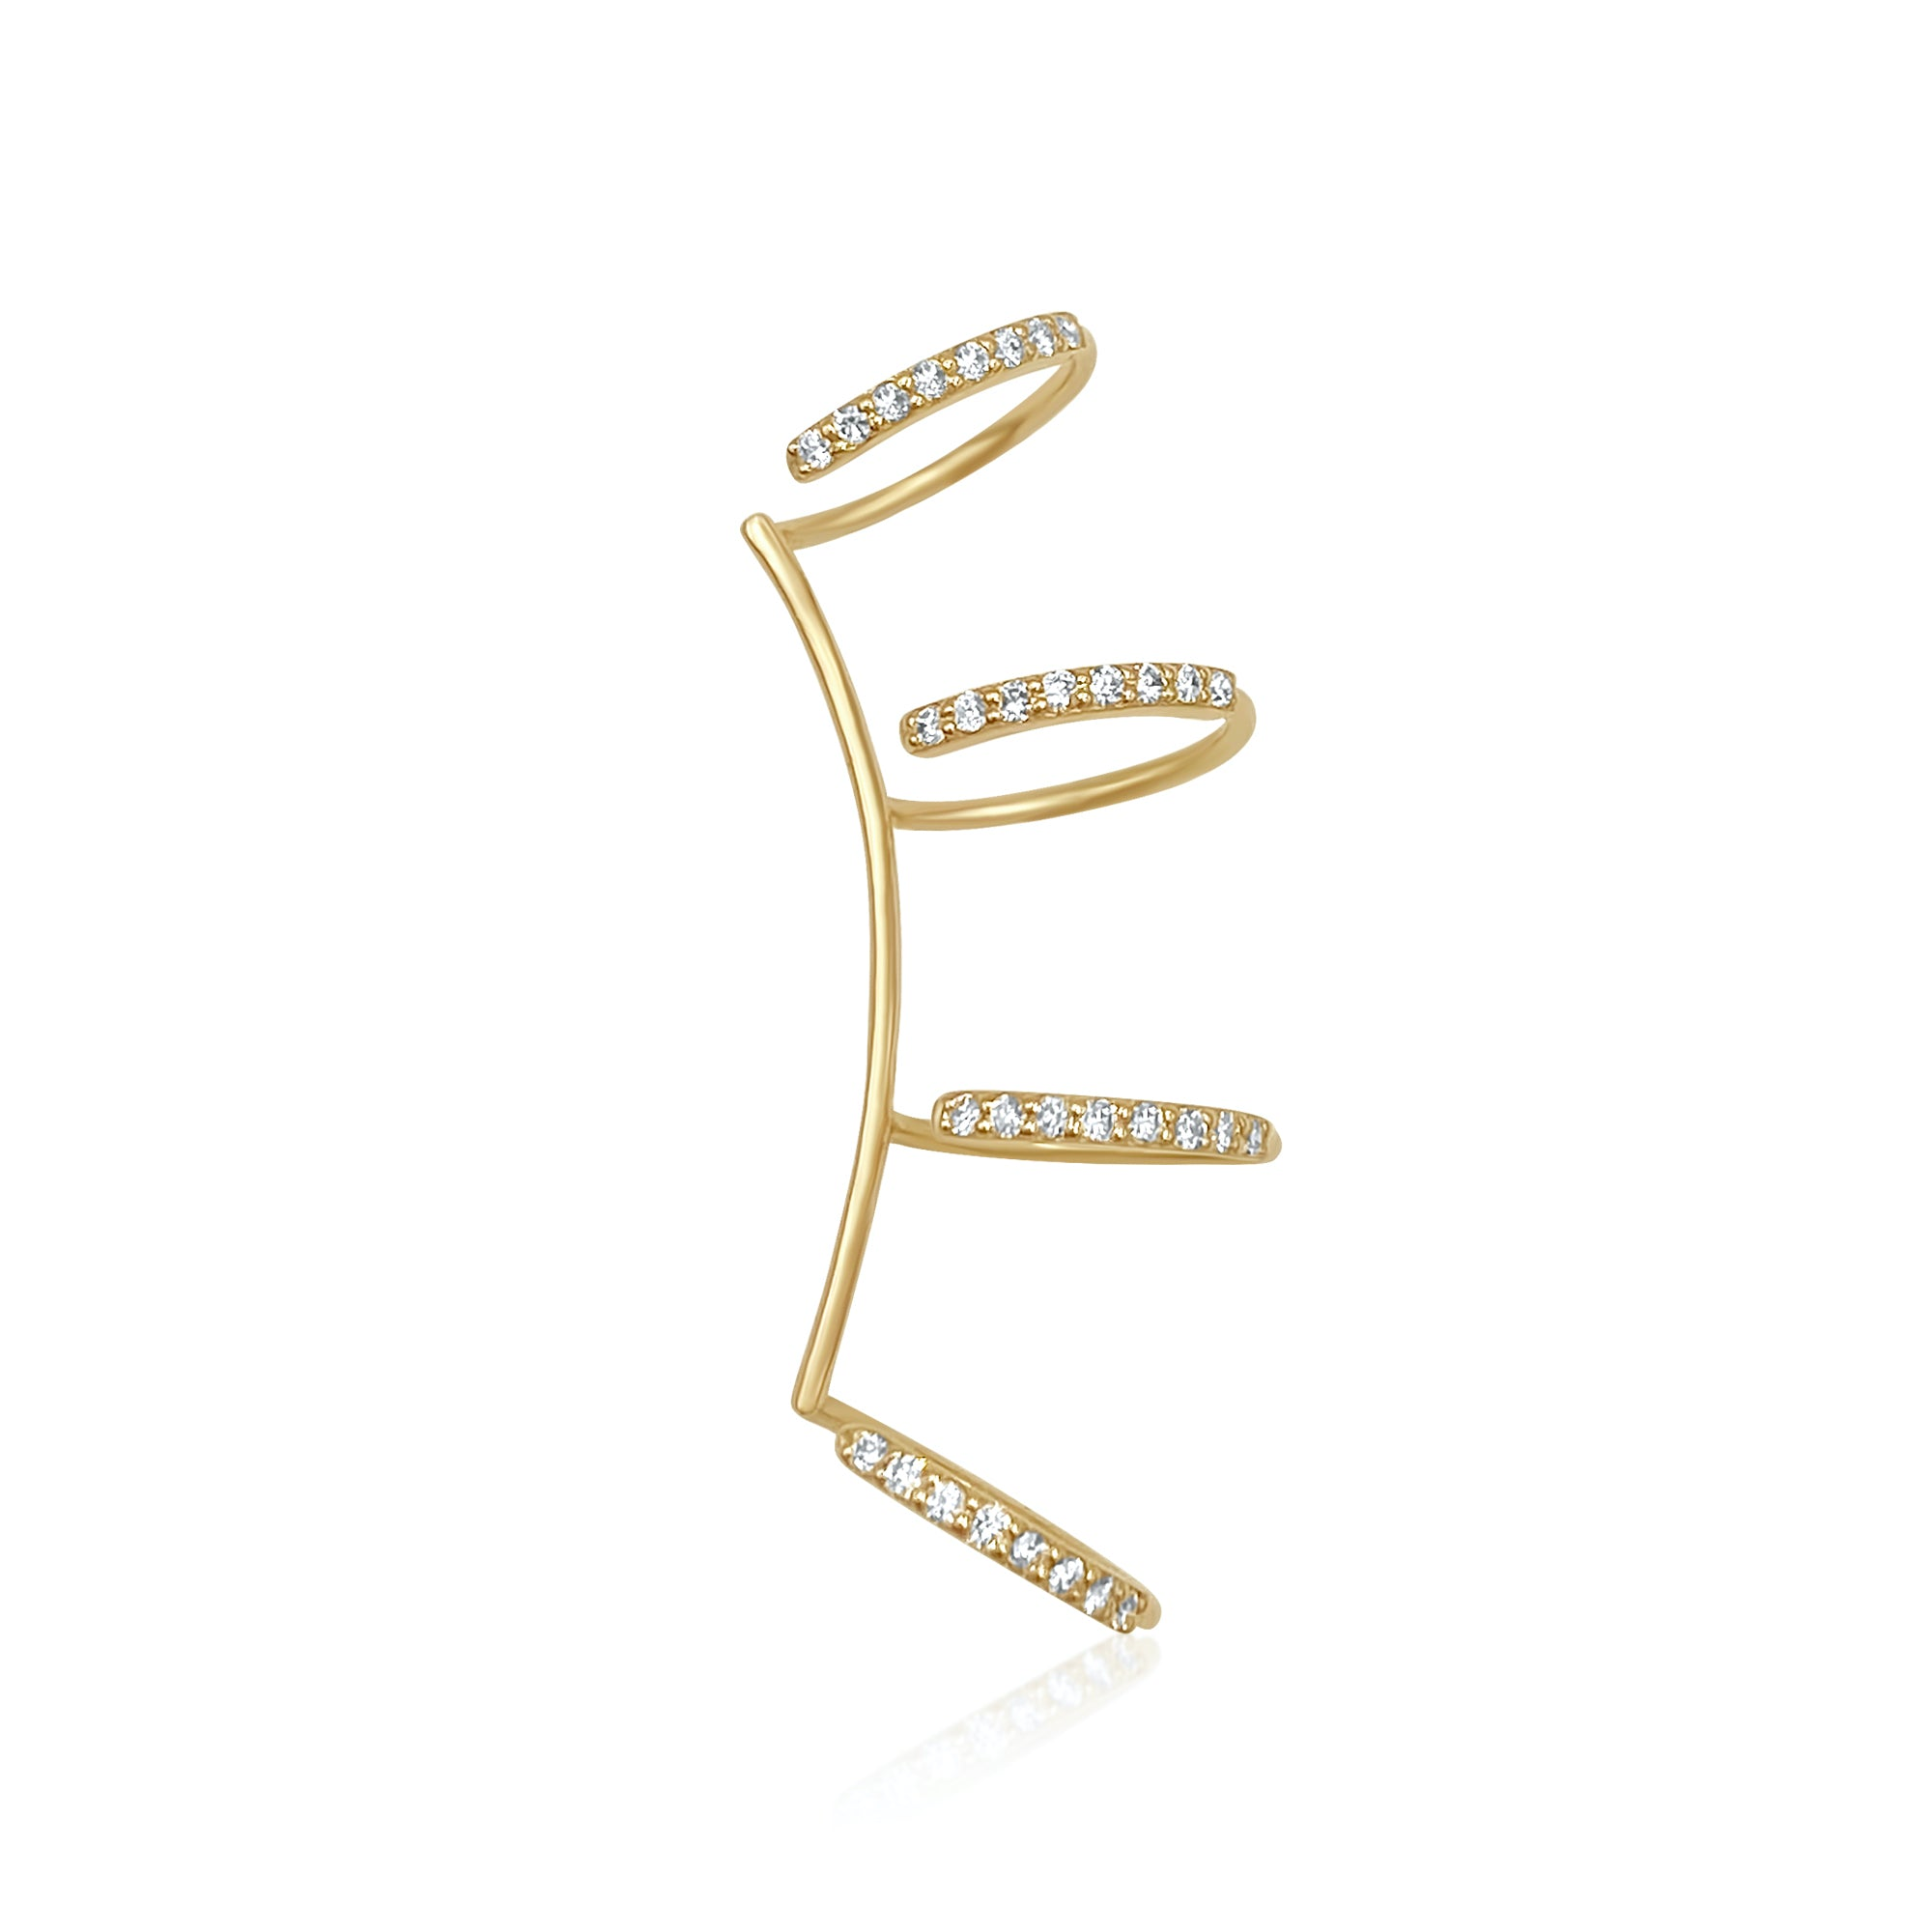 XL Diamond Ear Cuff